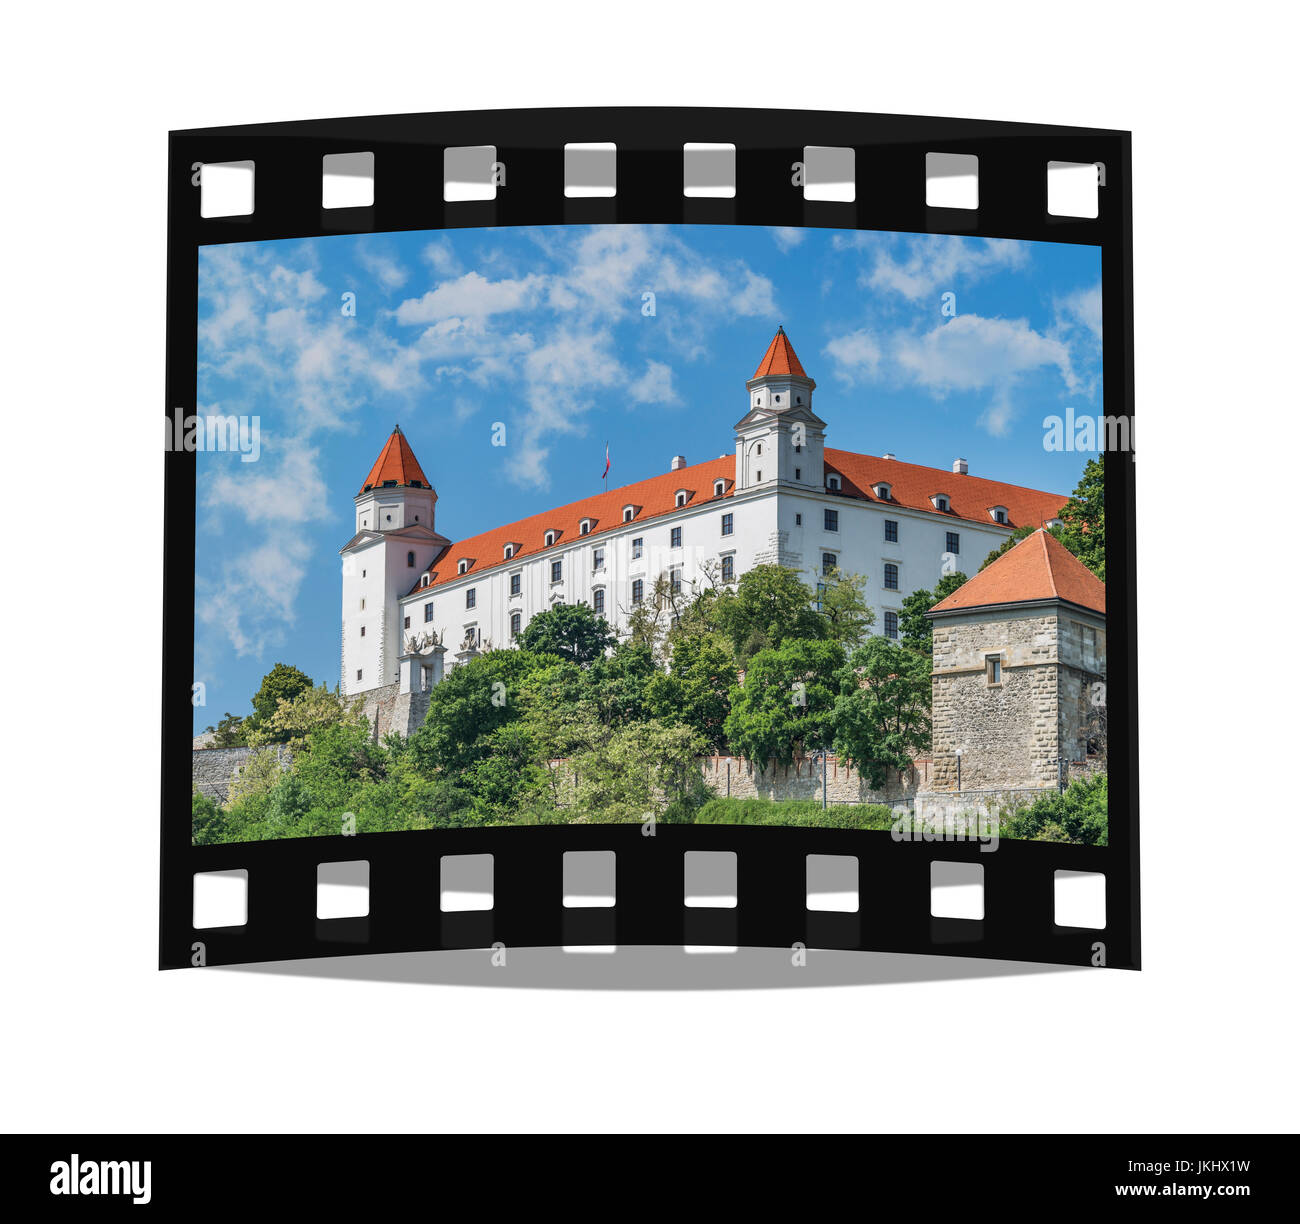 burg bratislava befindet sich in bratislava der hauptstadt der slowakei in europa sterben die. Black Bedroom Furniture Sets. Home Design Ideas